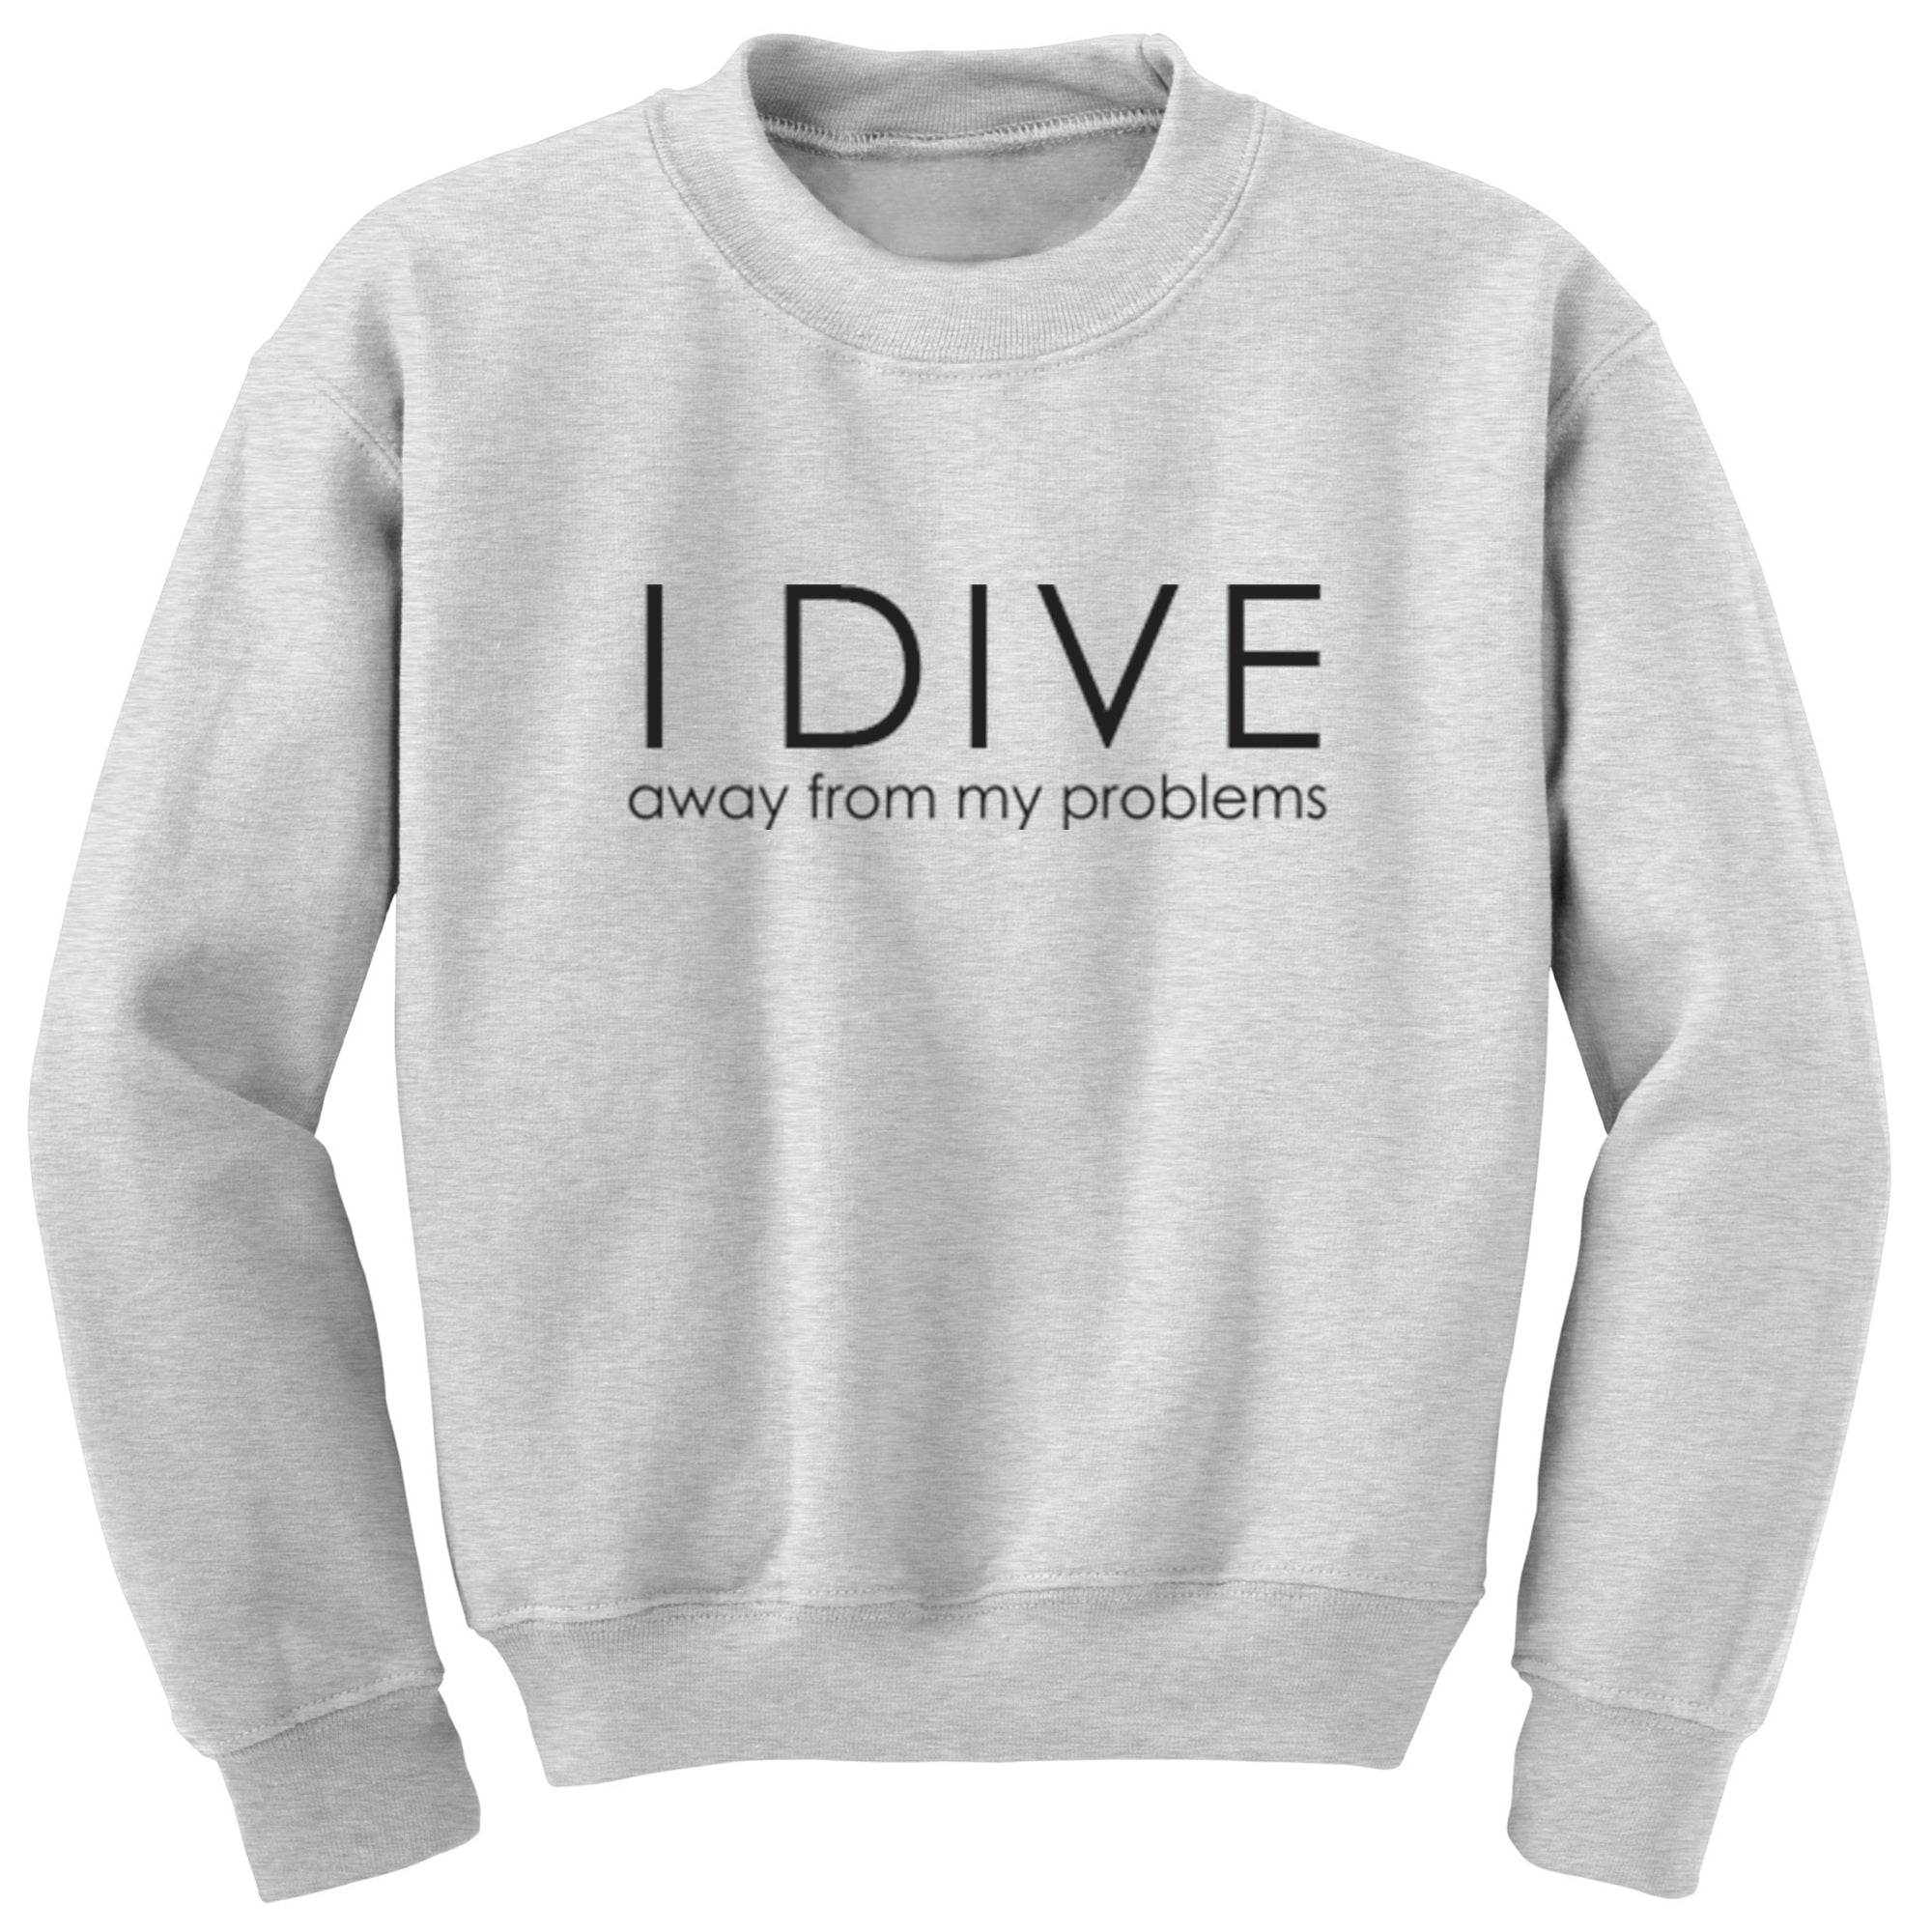 I Dive Away From My Problems Unisex Jumper S0598 - Illustrated Identity Ltd.